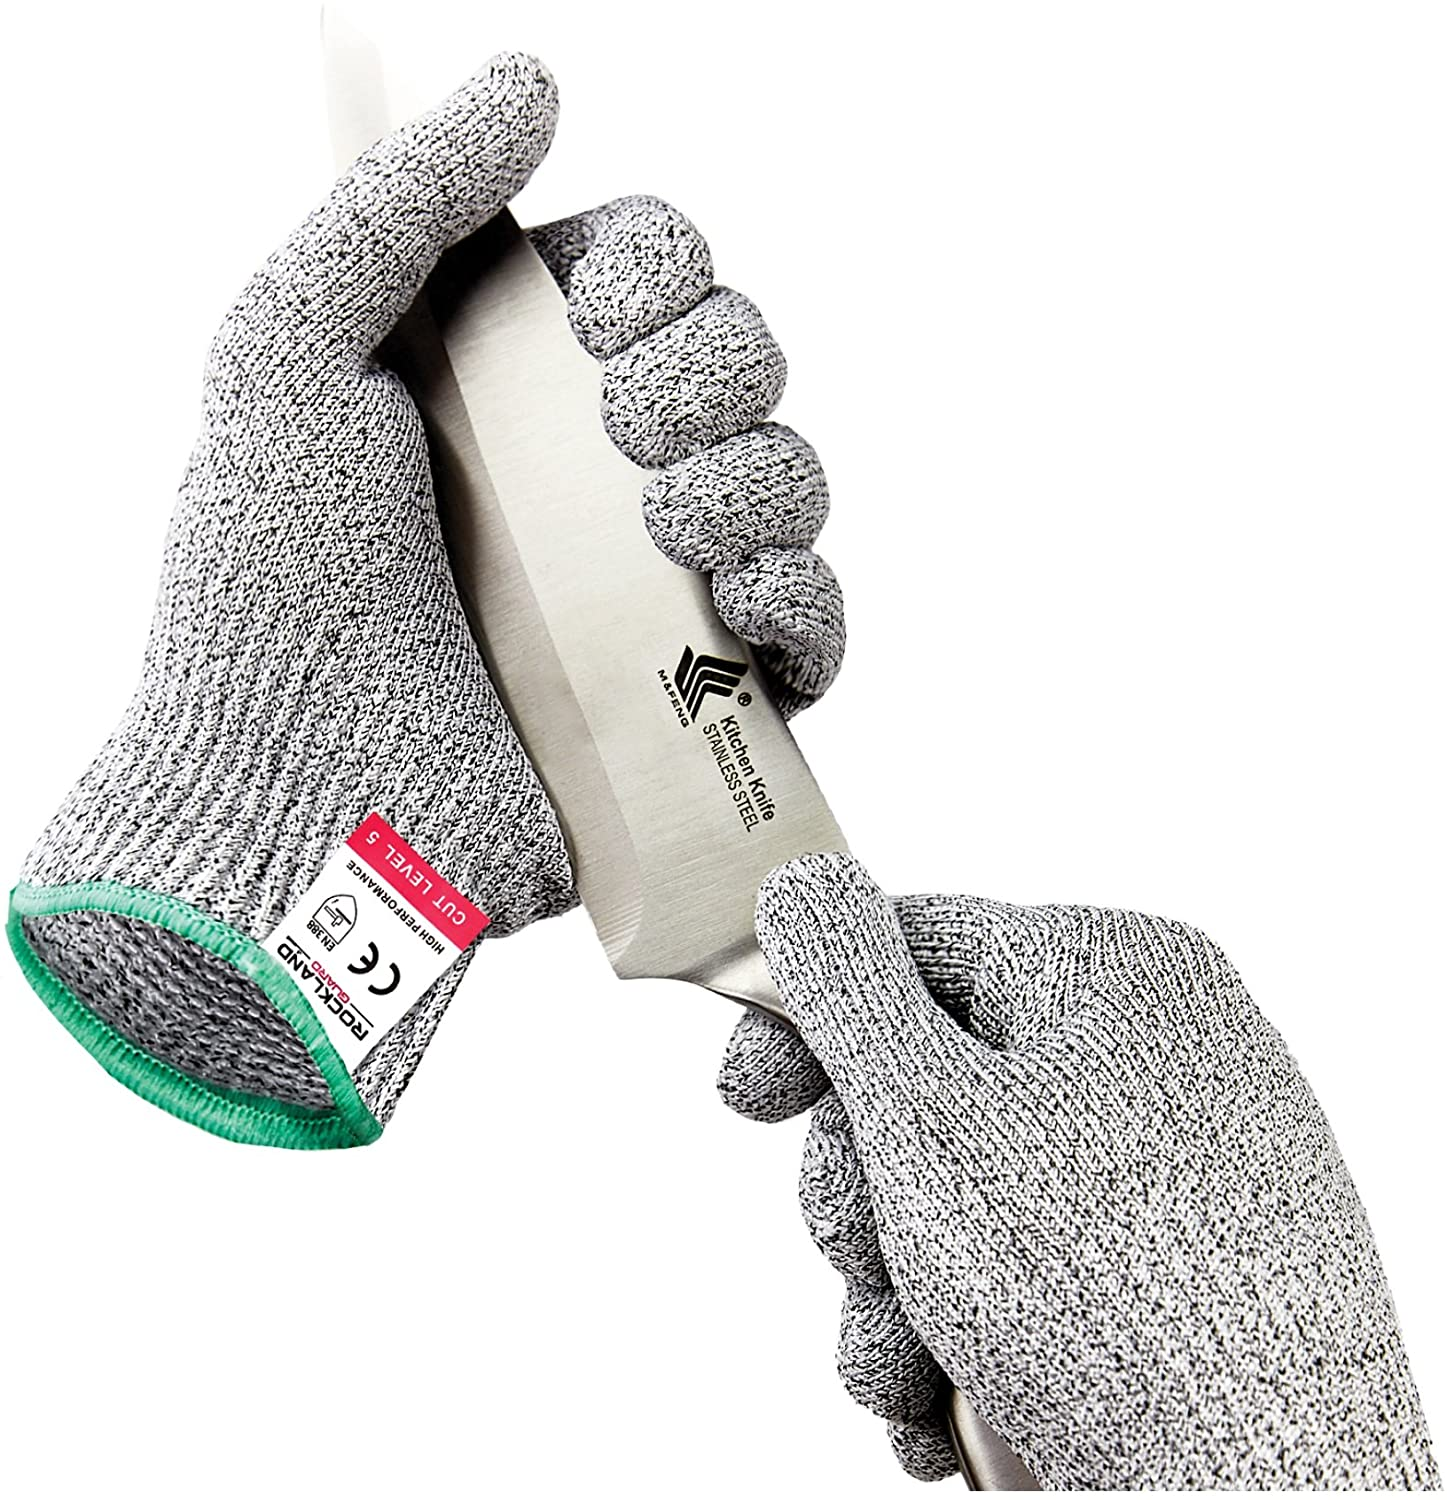 Rockland Guard Cry & Cut Resistant Gloves - High Performance Level 5 Protection, Food Grade. Size Medium, Free Storage Bag Included!